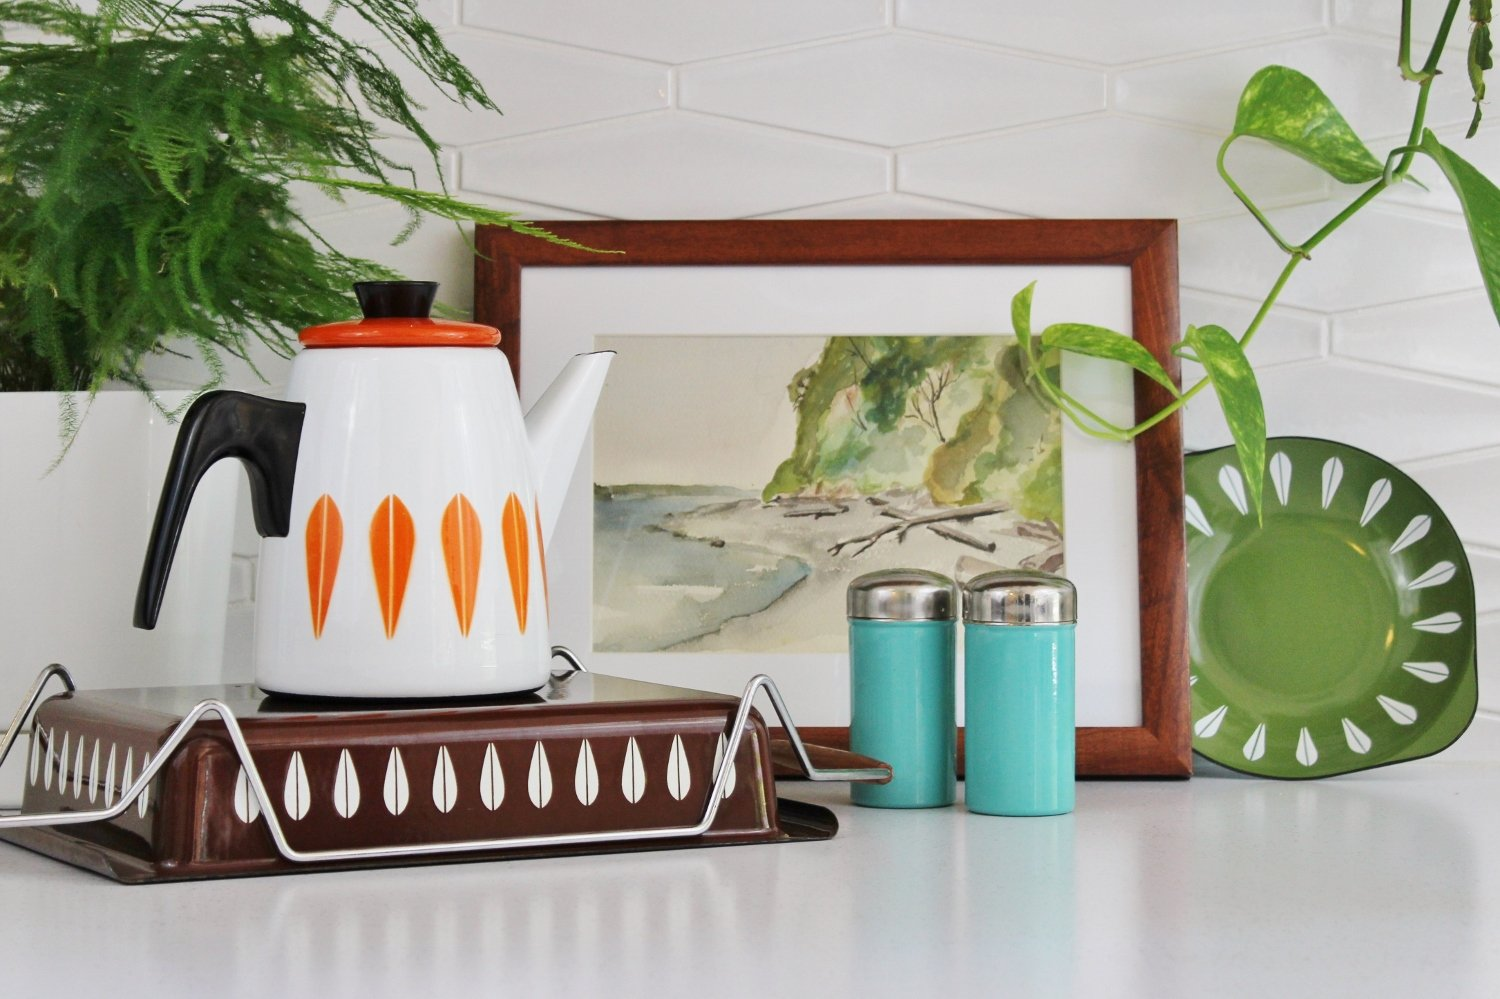 Cathrineholm lasagna pan, coffee pot and scampi dish in mid-century modern kitchen